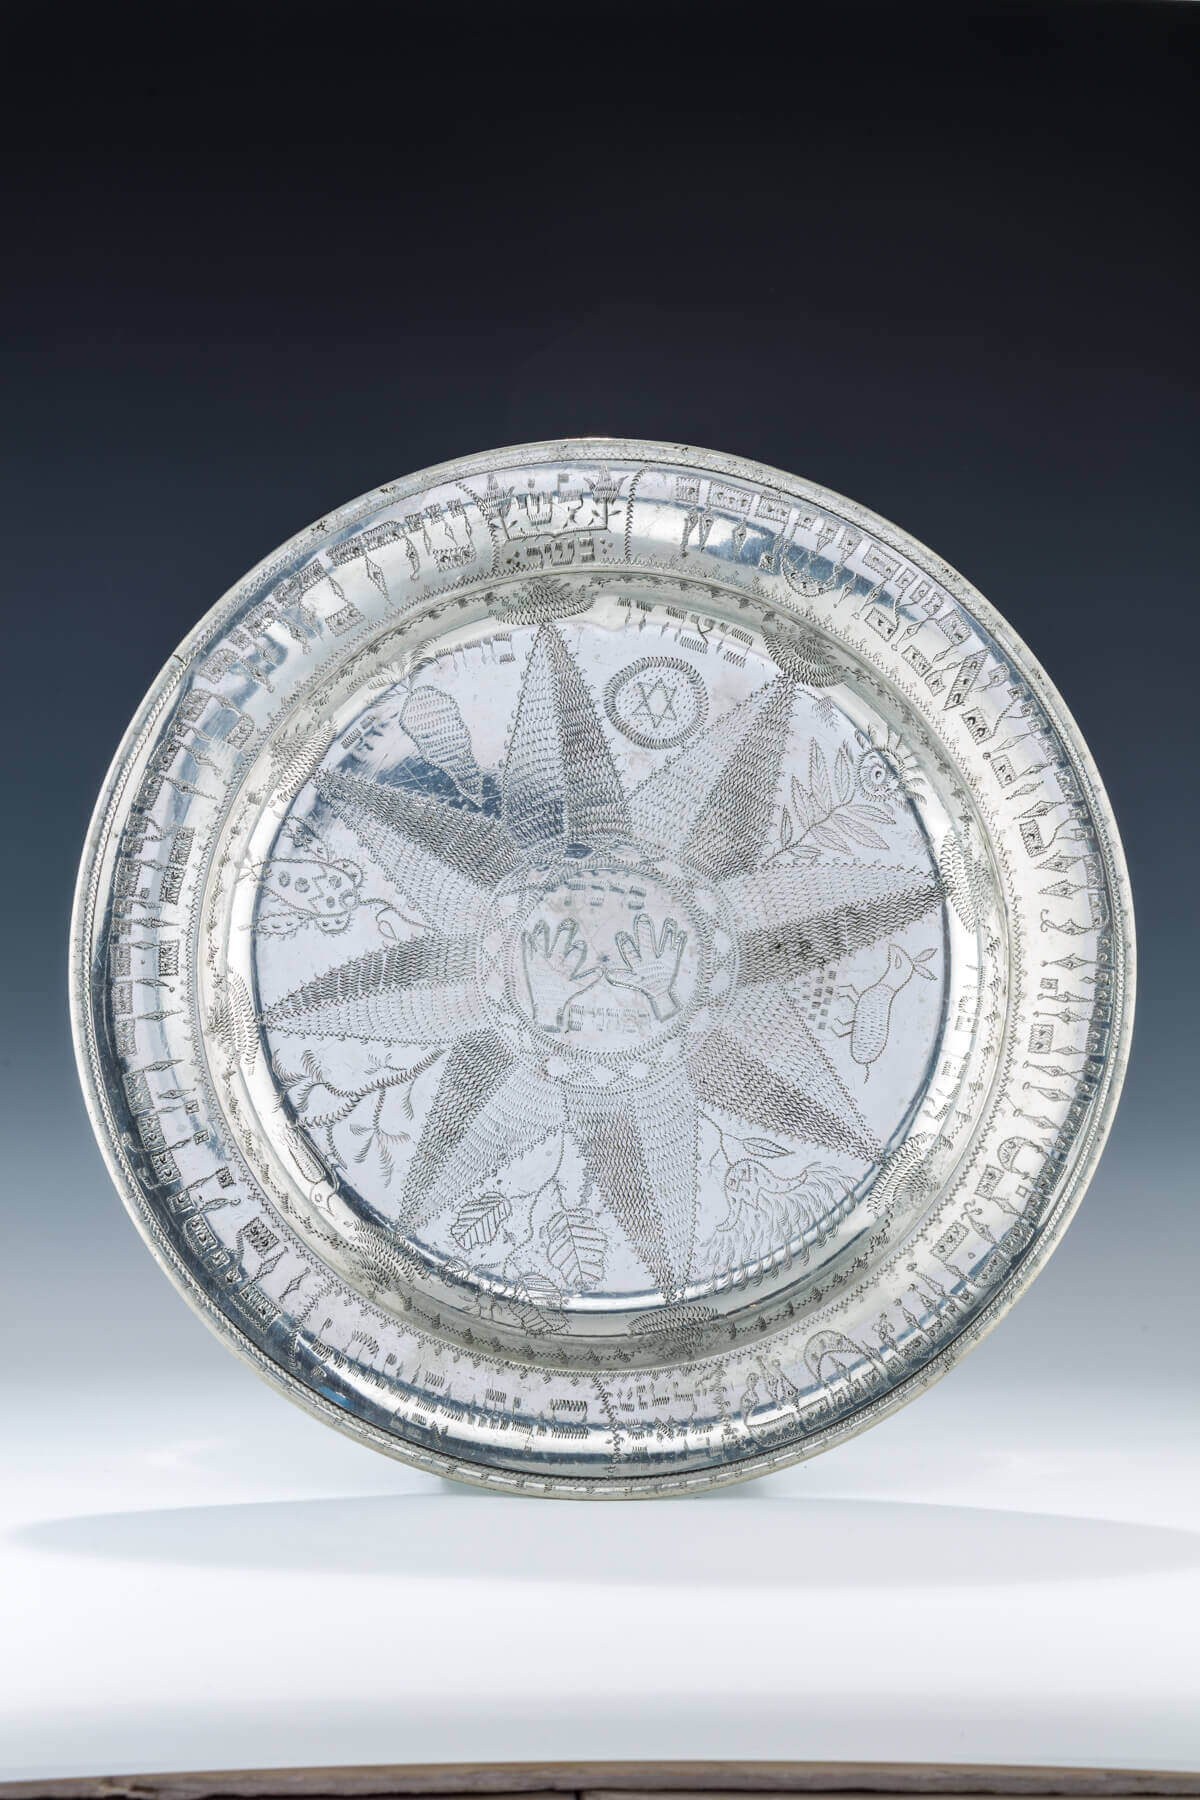 065. A LARGE AND RARE PEWTER SEDER DISH